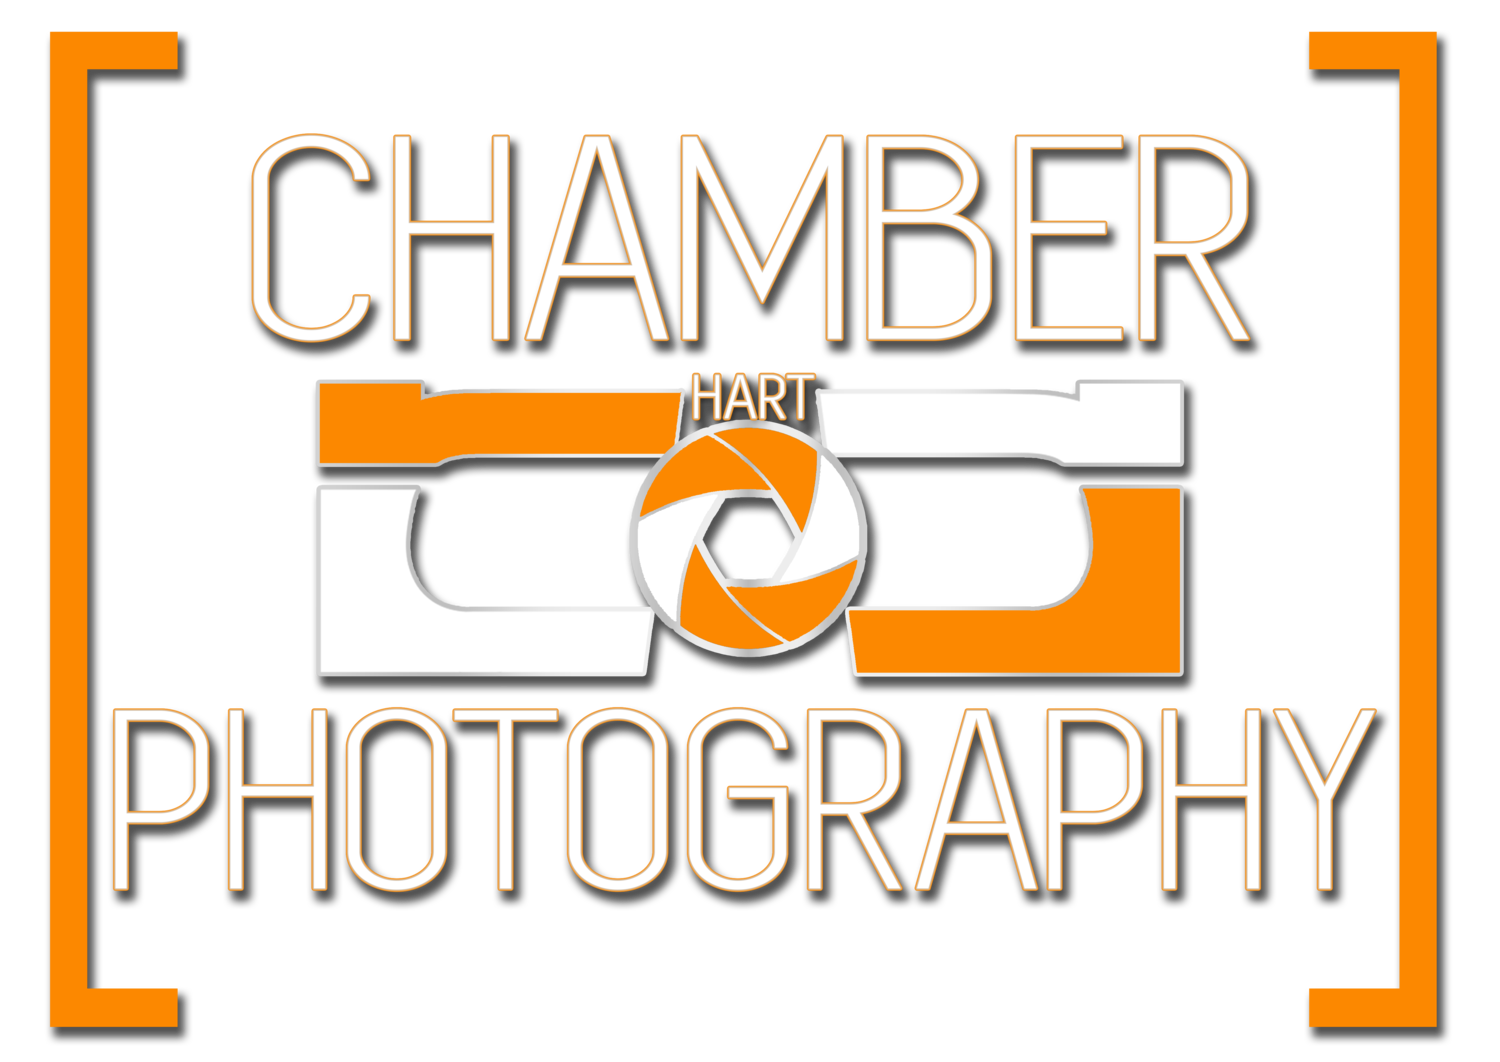 Chamber Hart Photography | Portraits| Photo Booth| Weddings | Photographer